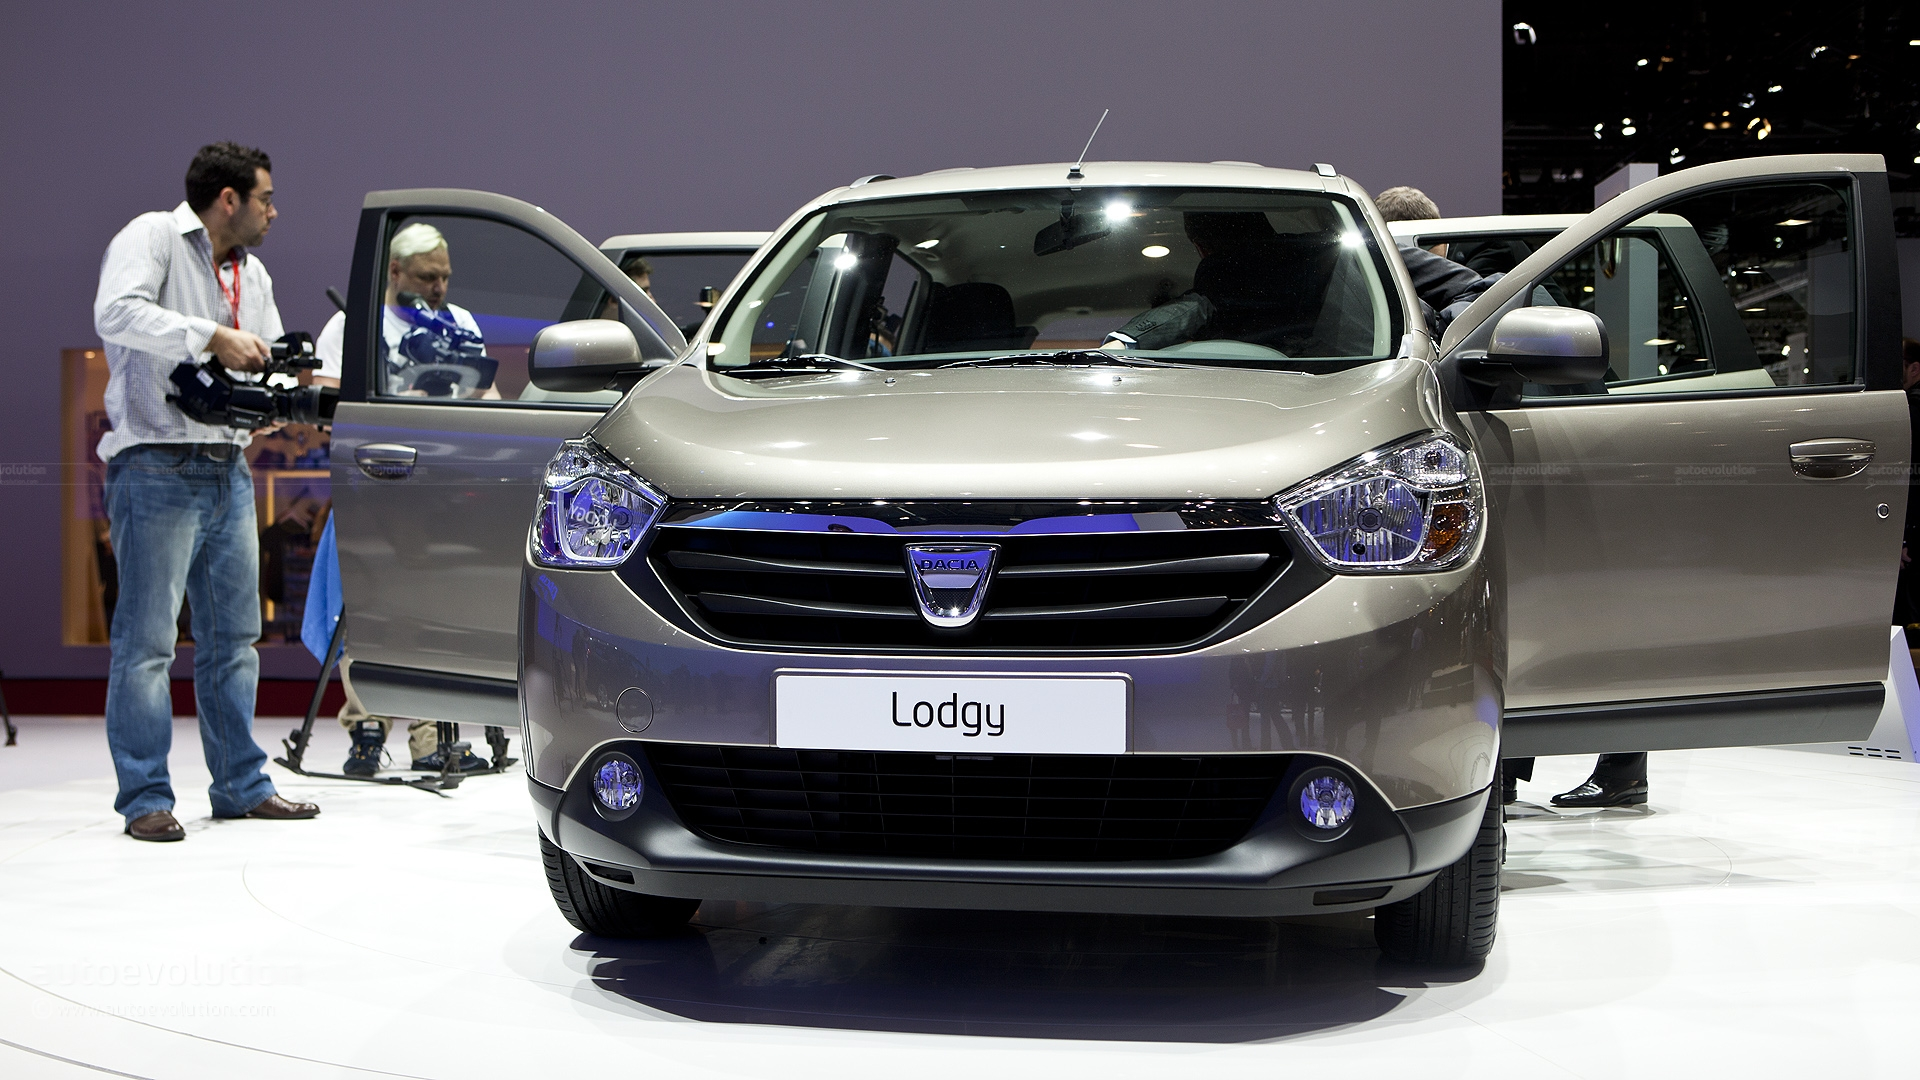 2013 dacia lodgy pictures information and specs auto. Black Bedroom Furniture Sets. Home Design Ideas